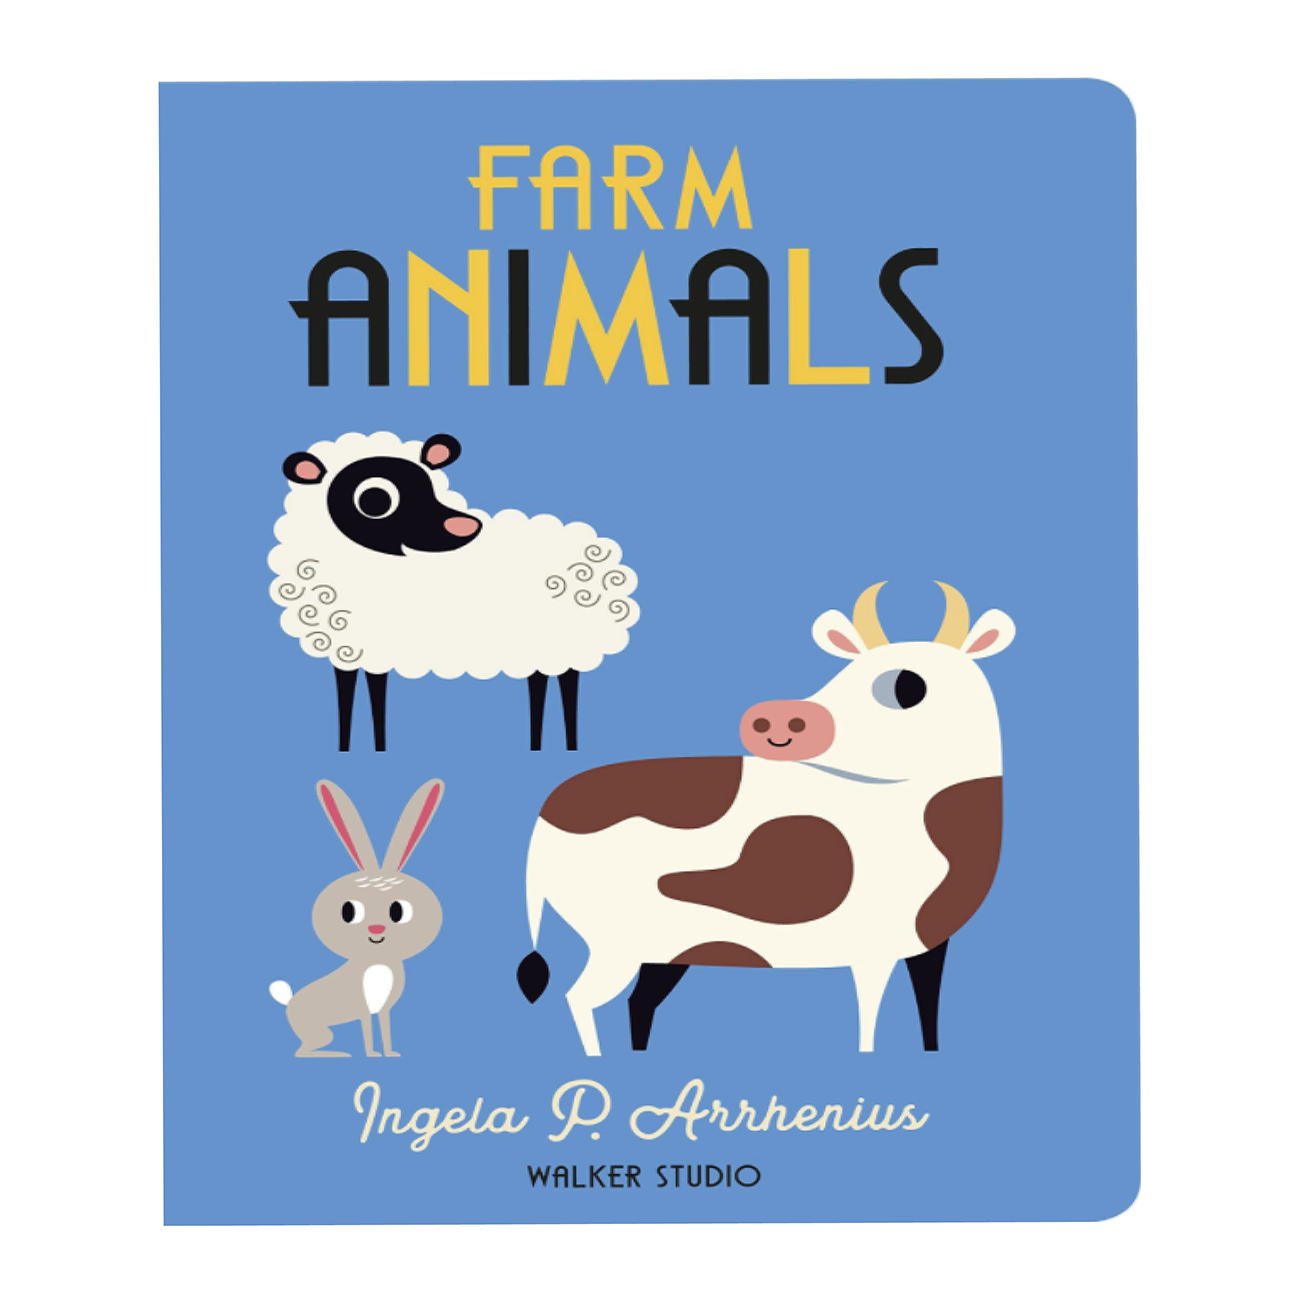 farm animals -  Ingela P Arrhenius